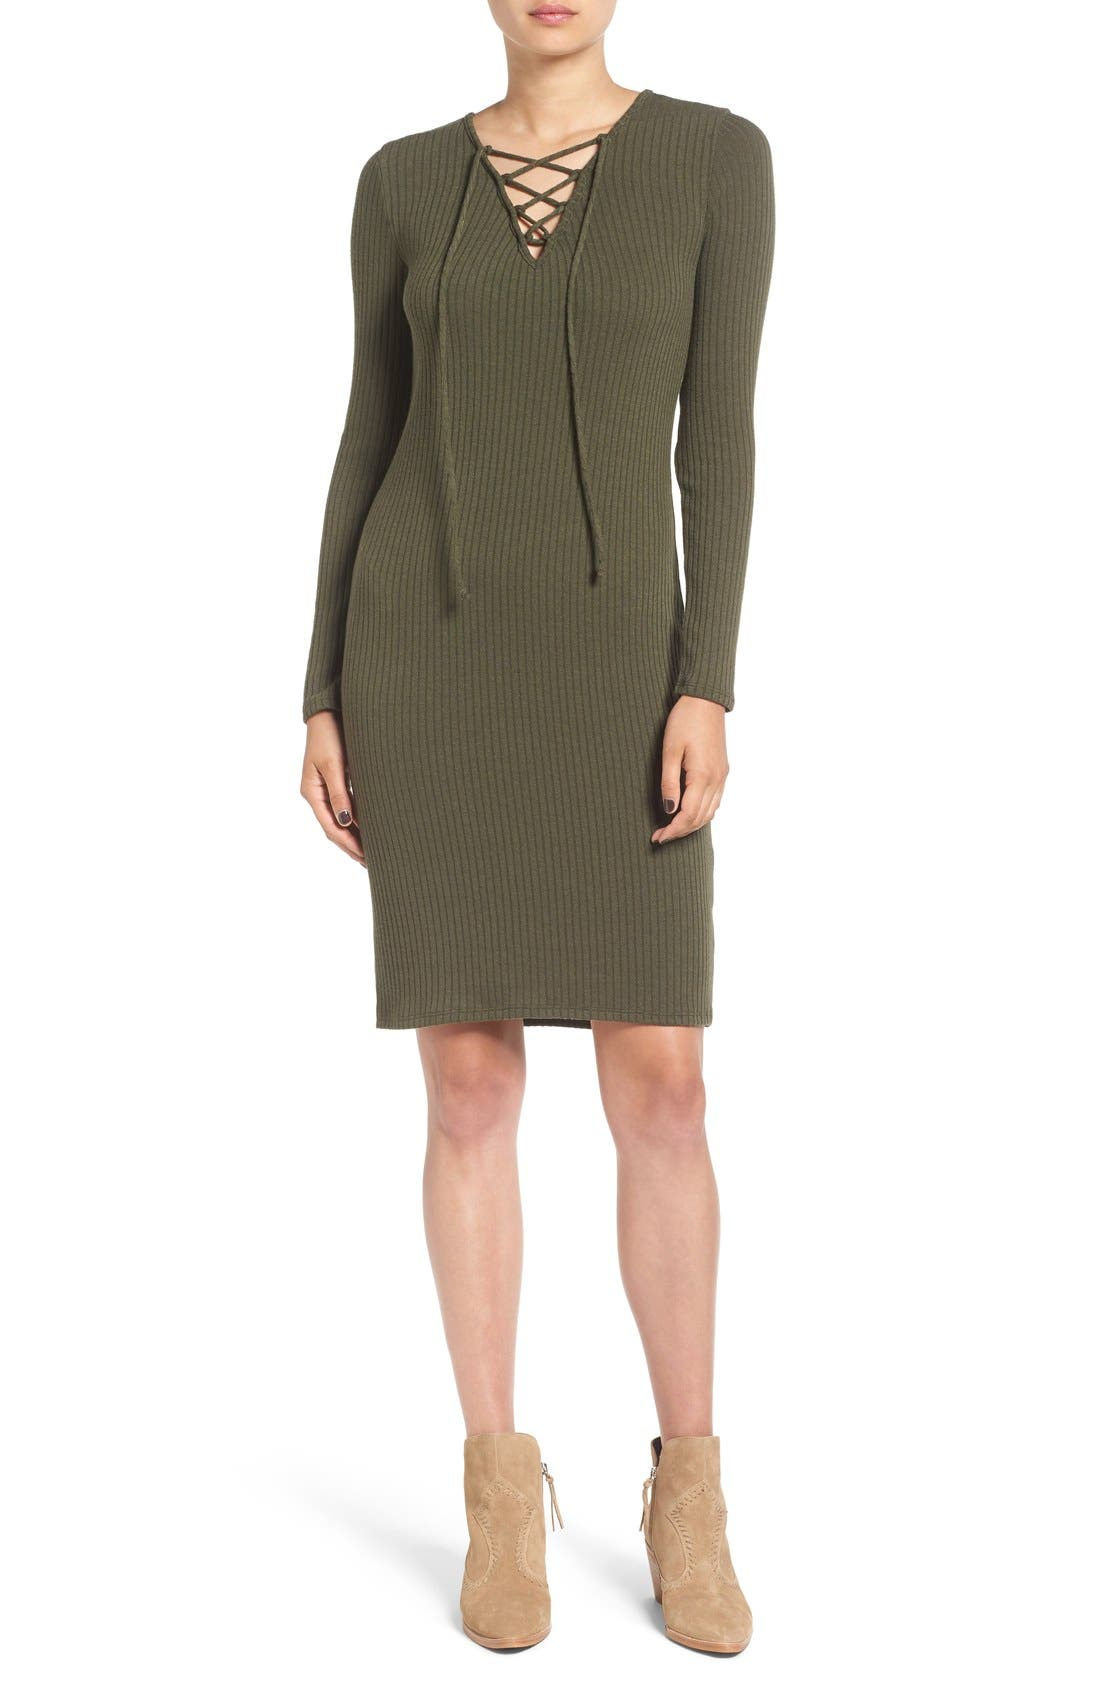 Main Image - One Clothing Lace-Up Neck Ribbed Body-Con Dress